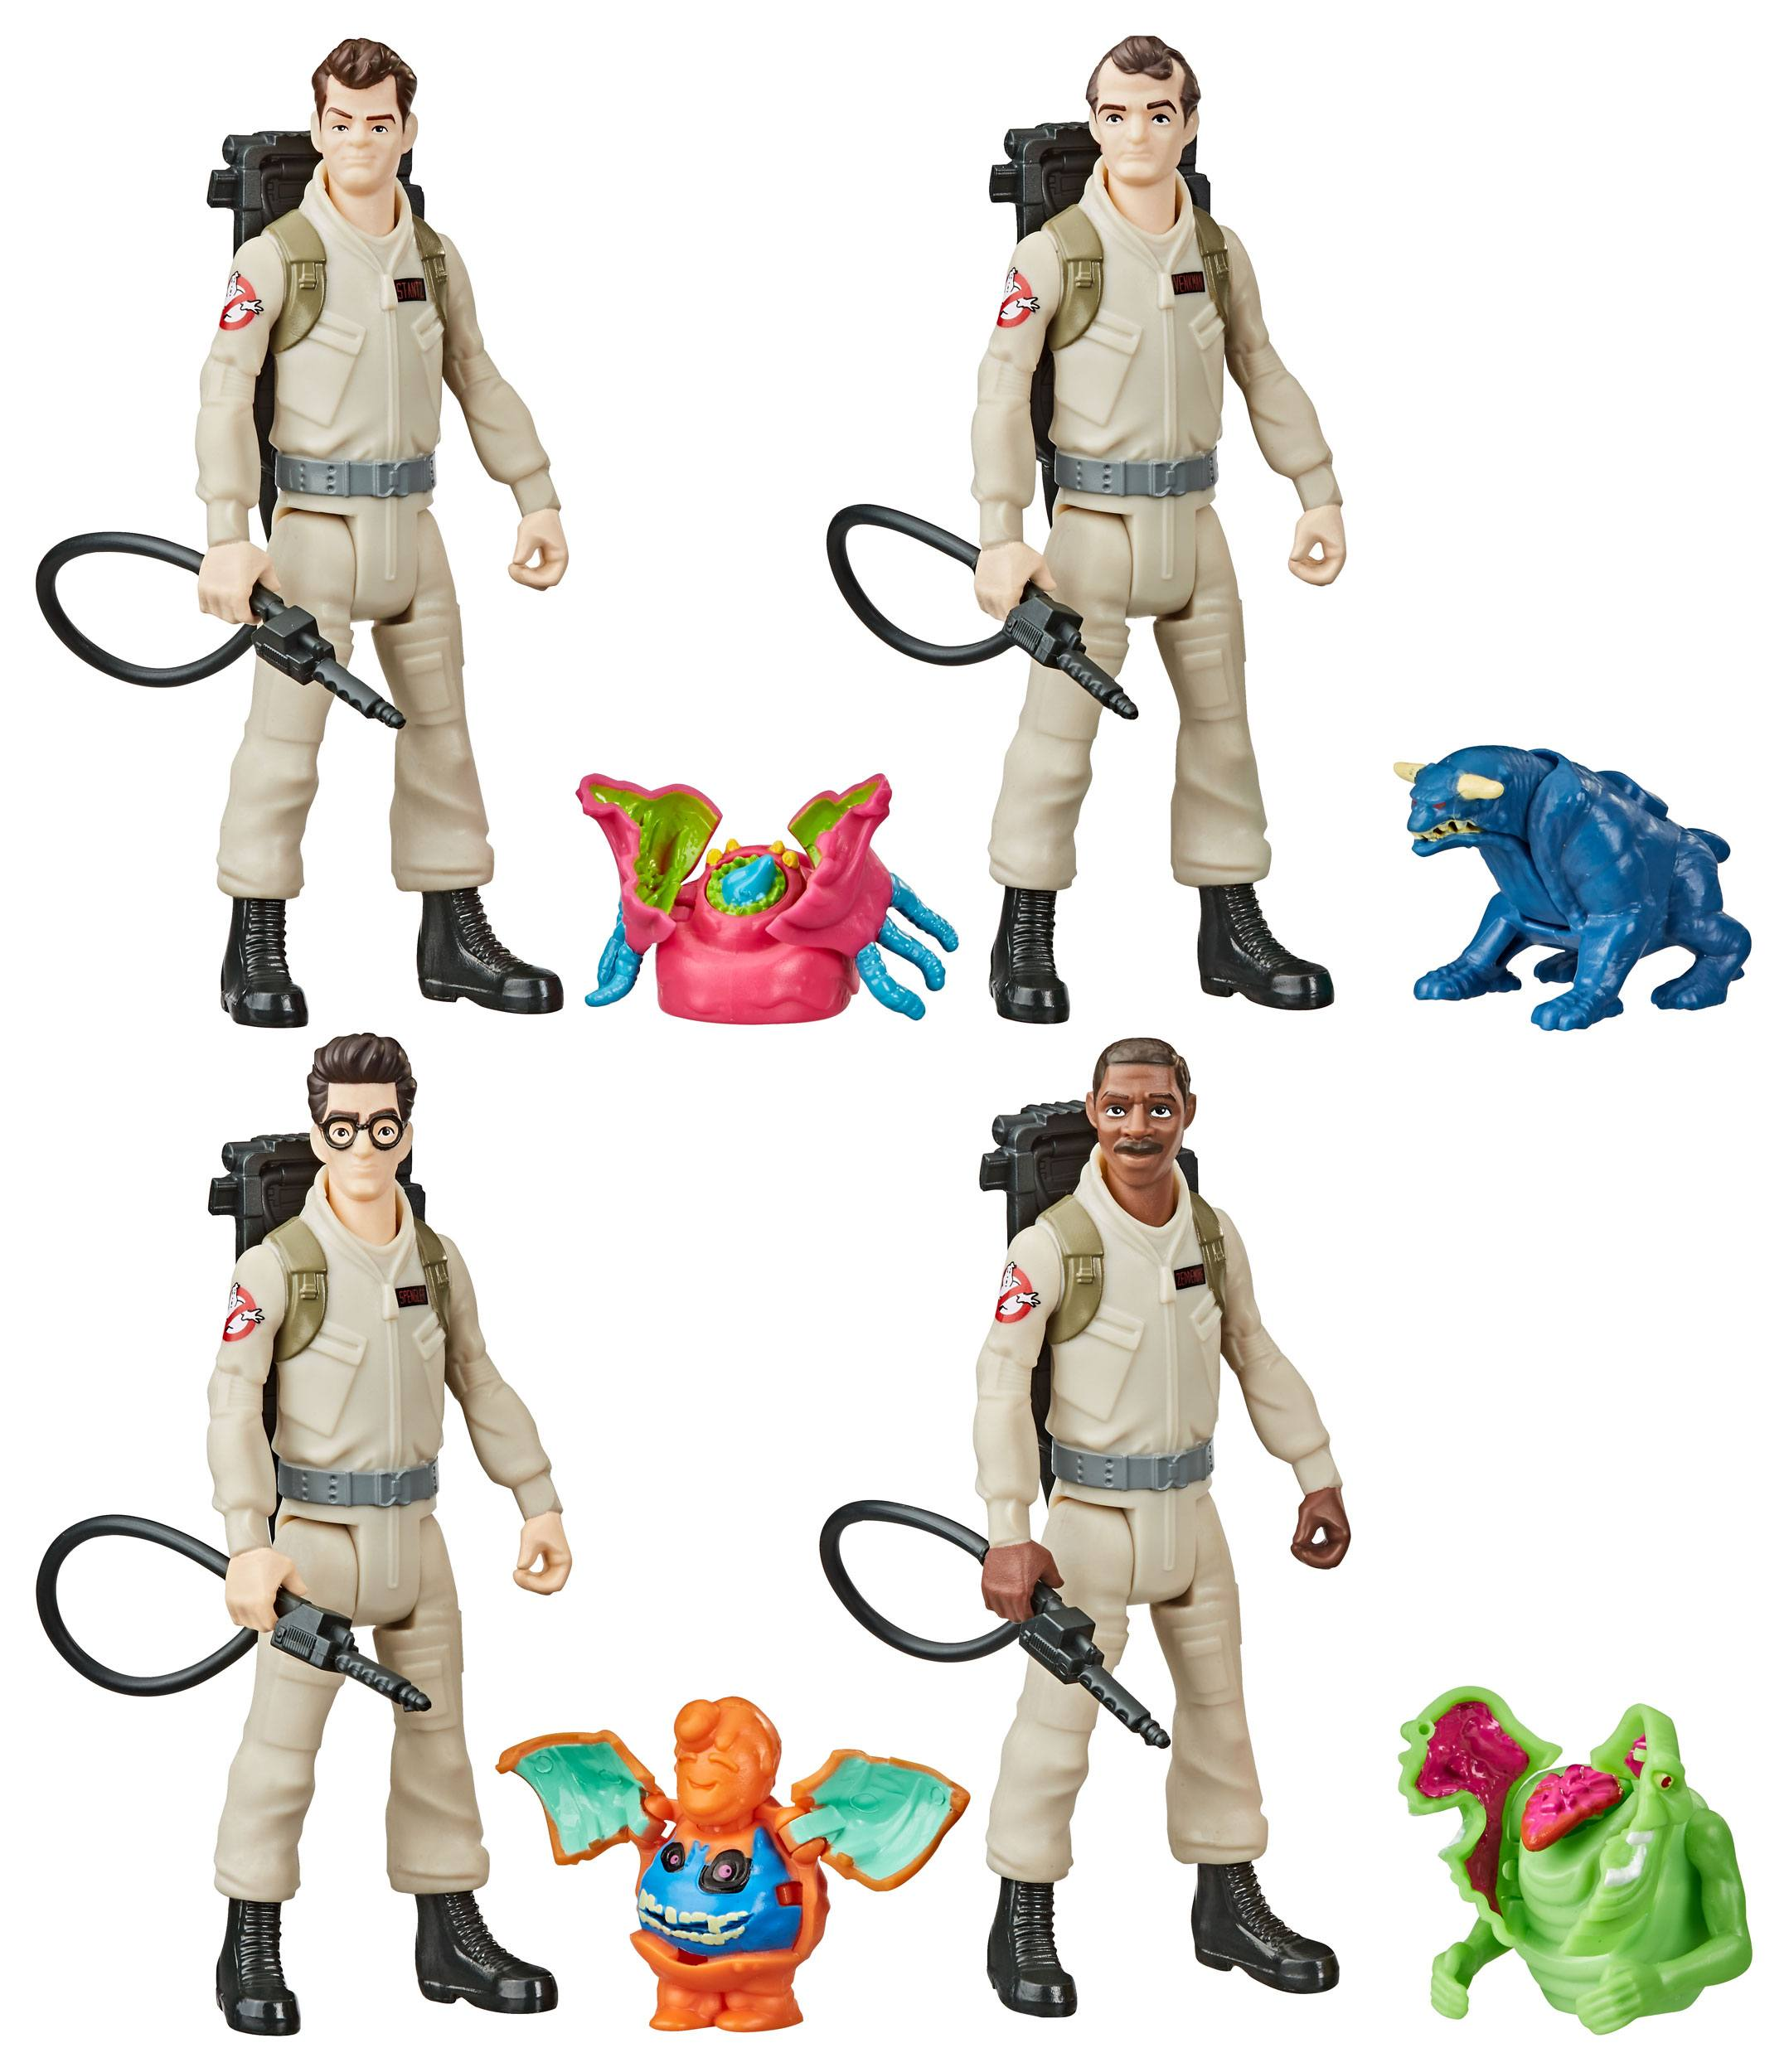 Ghostbusters Fright Features Assortment (4) Wave 2 E95445L01 05010993689361